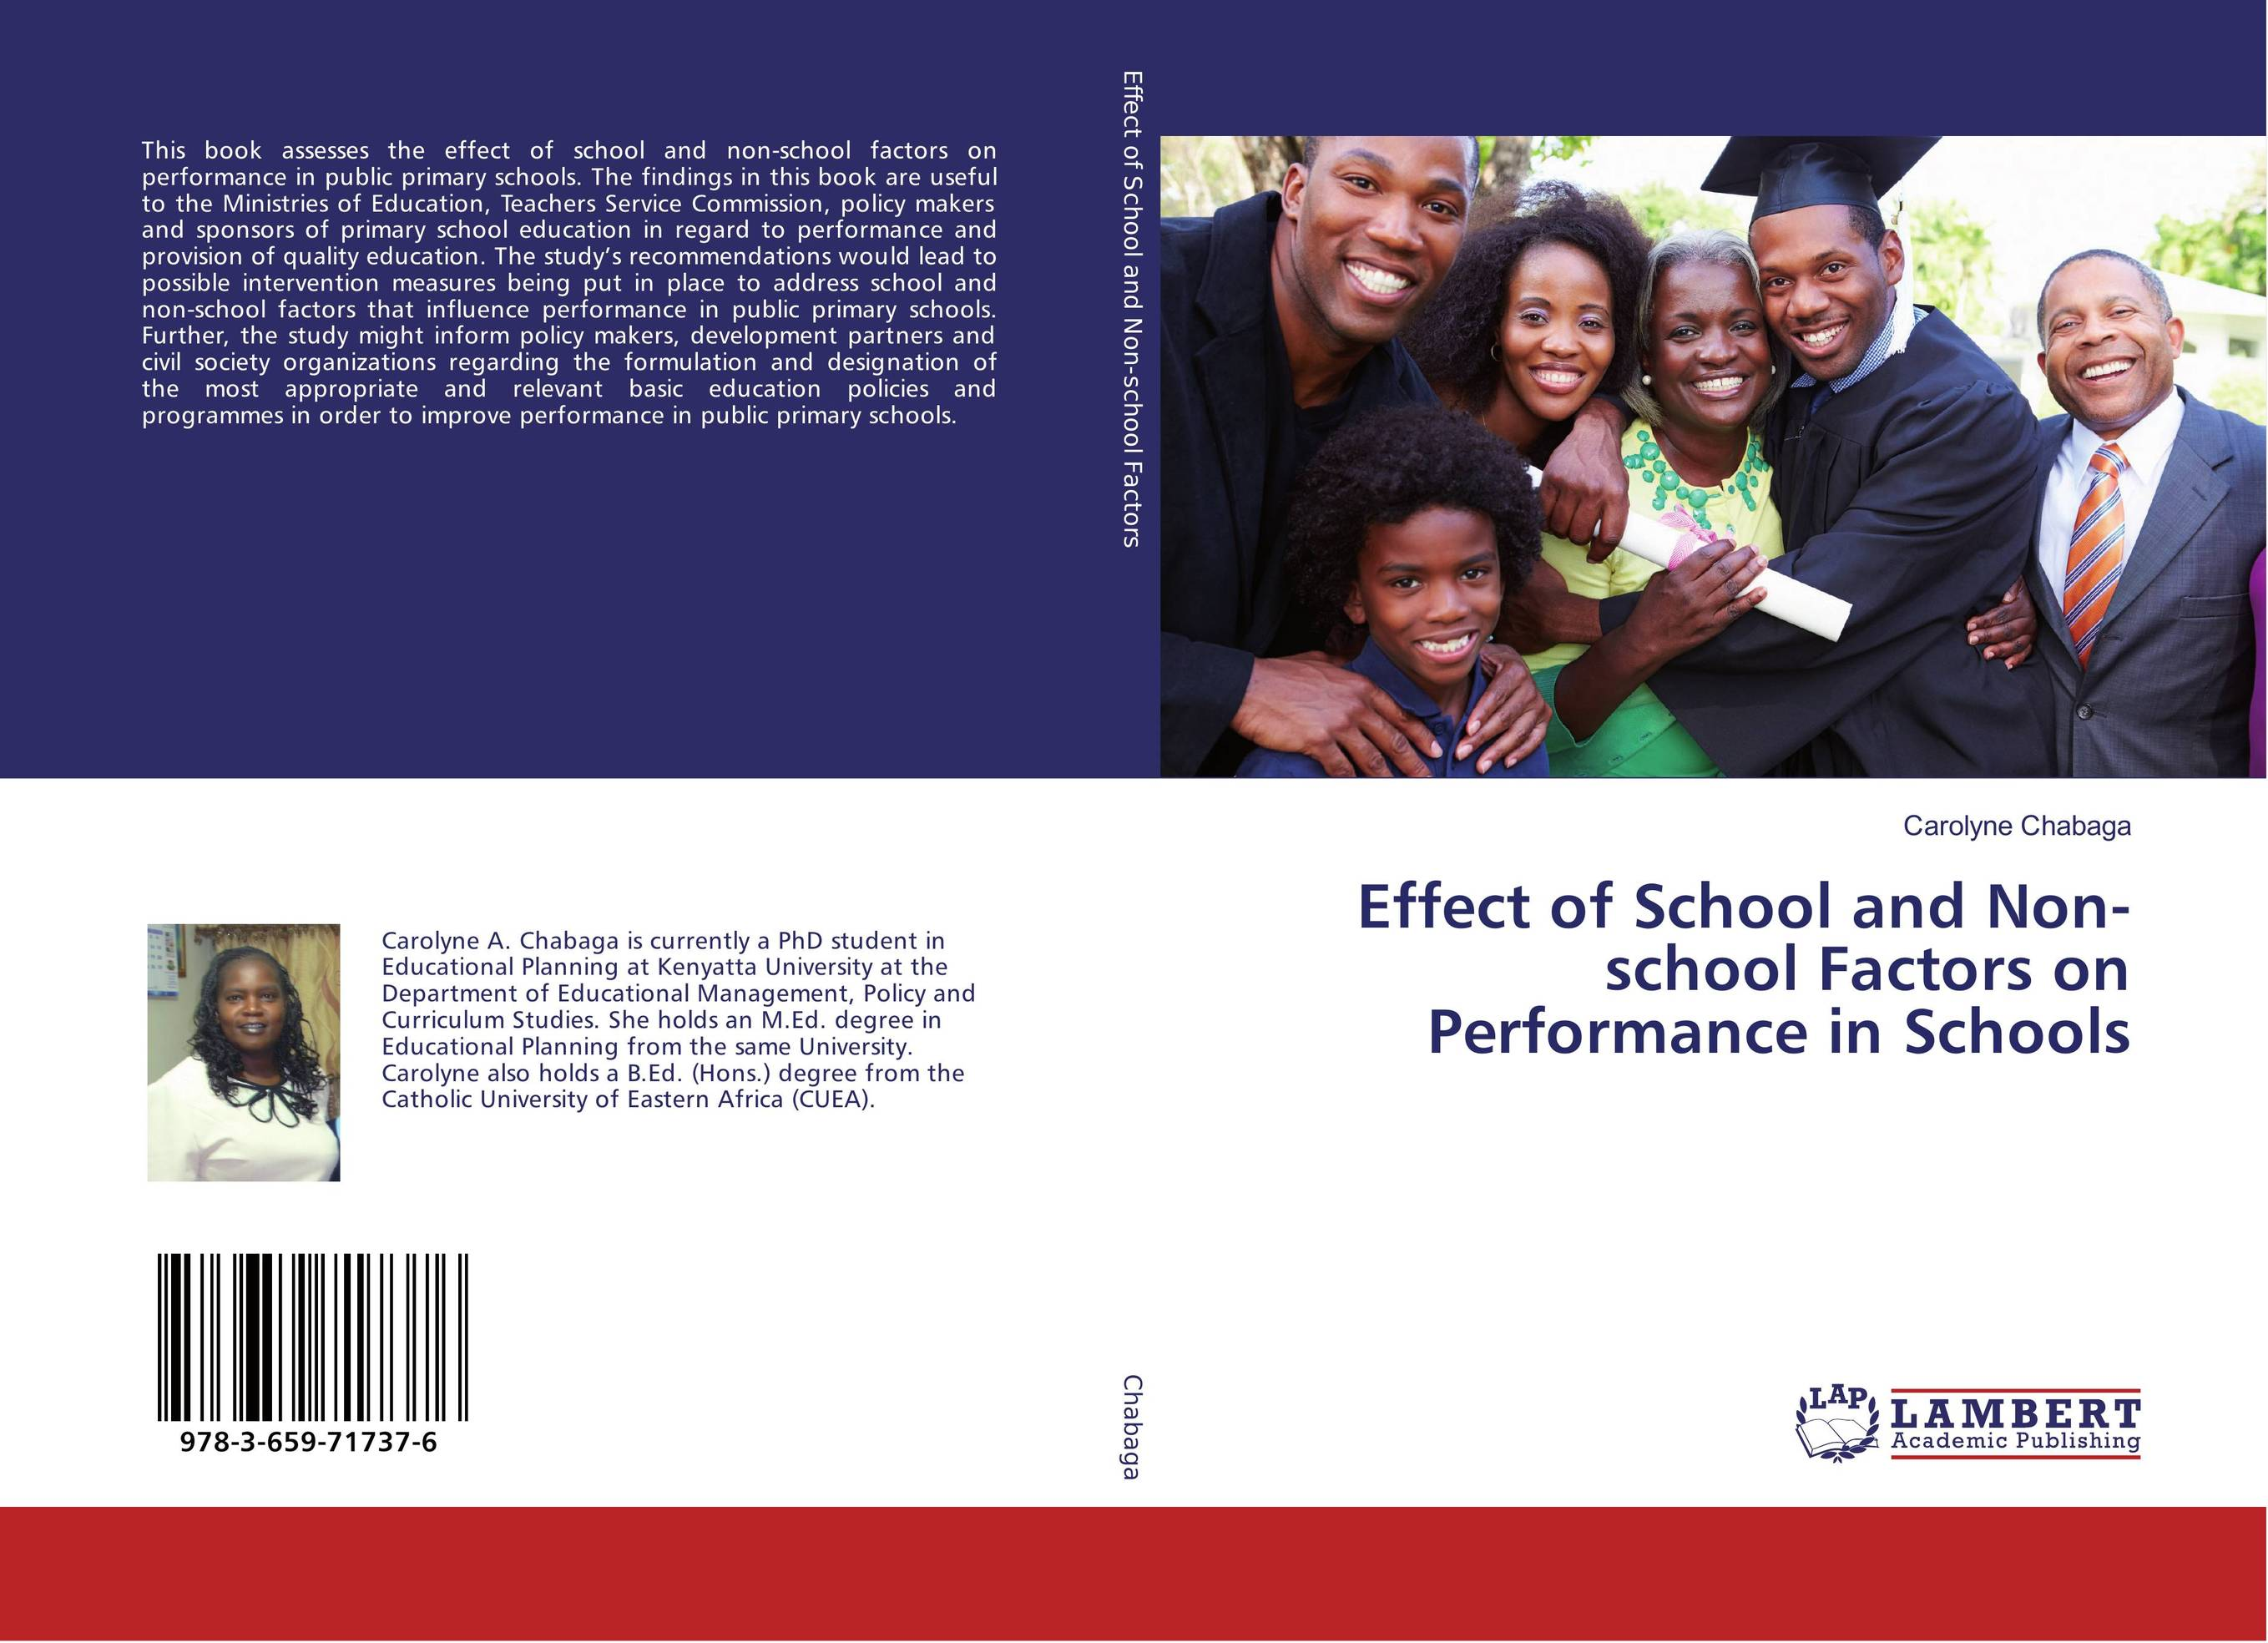 the effects of school activities to A study of high school seniors in the 1988 national educational longitudinal study showed that positive perceptions of religion and frequent attendance at religious activities were related to the following: a) positive parental involvement, b) positive perceptions of the future, c) positive attitudes toward academics, d) less frequent drug use.